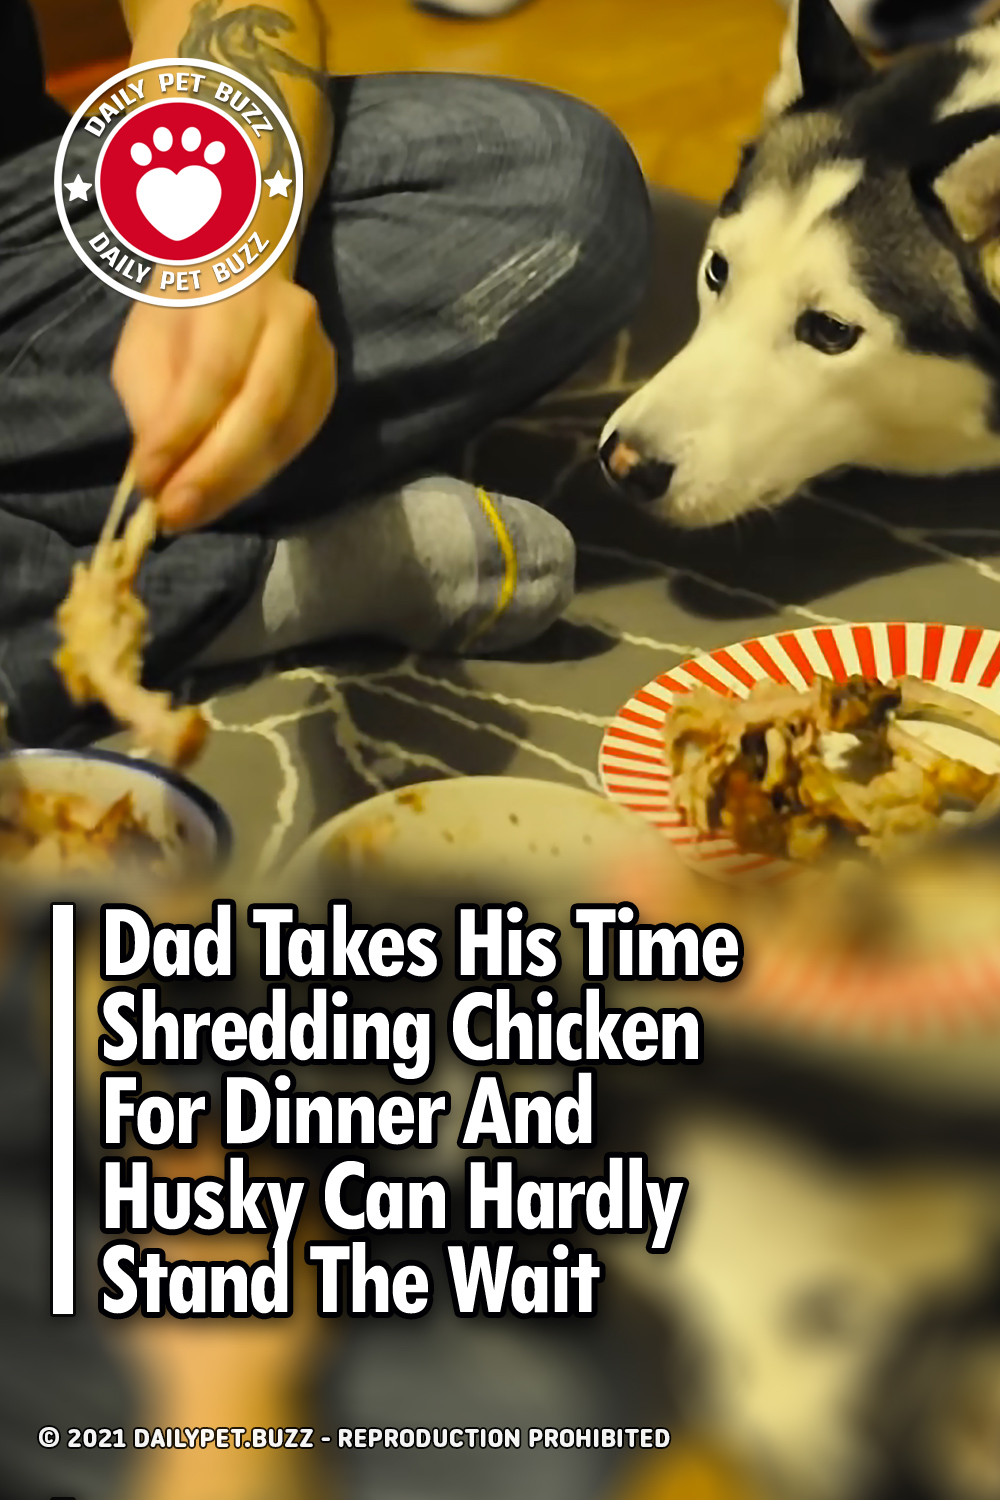 Dad Takes His Time Shredding Chicken For Dinner And Husky Can Hardly Stand The Wait